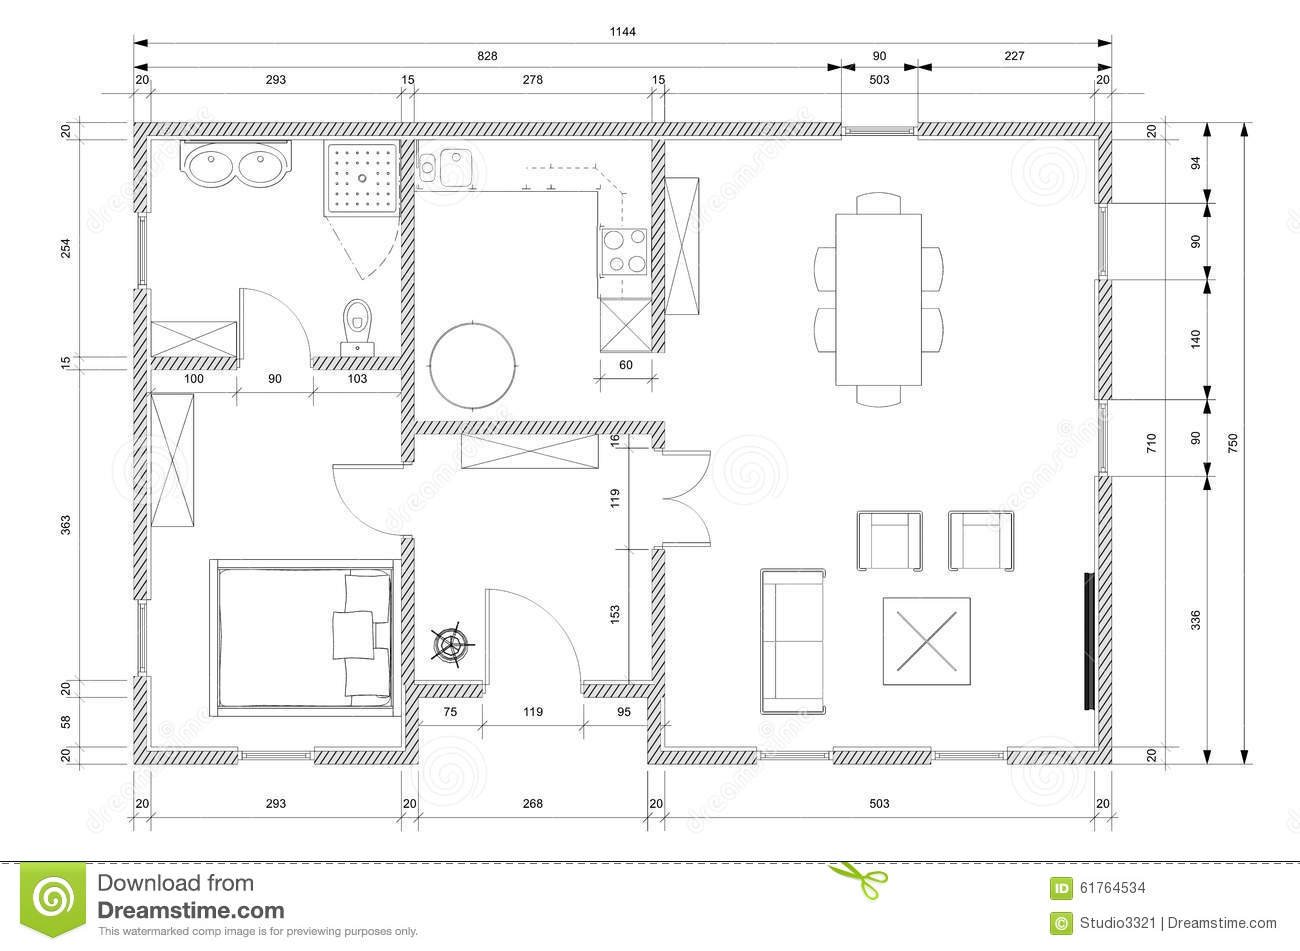 Plan d 39 architecte pour la construction de maison illustration stock illustration du - Plan de maison d architecte ...